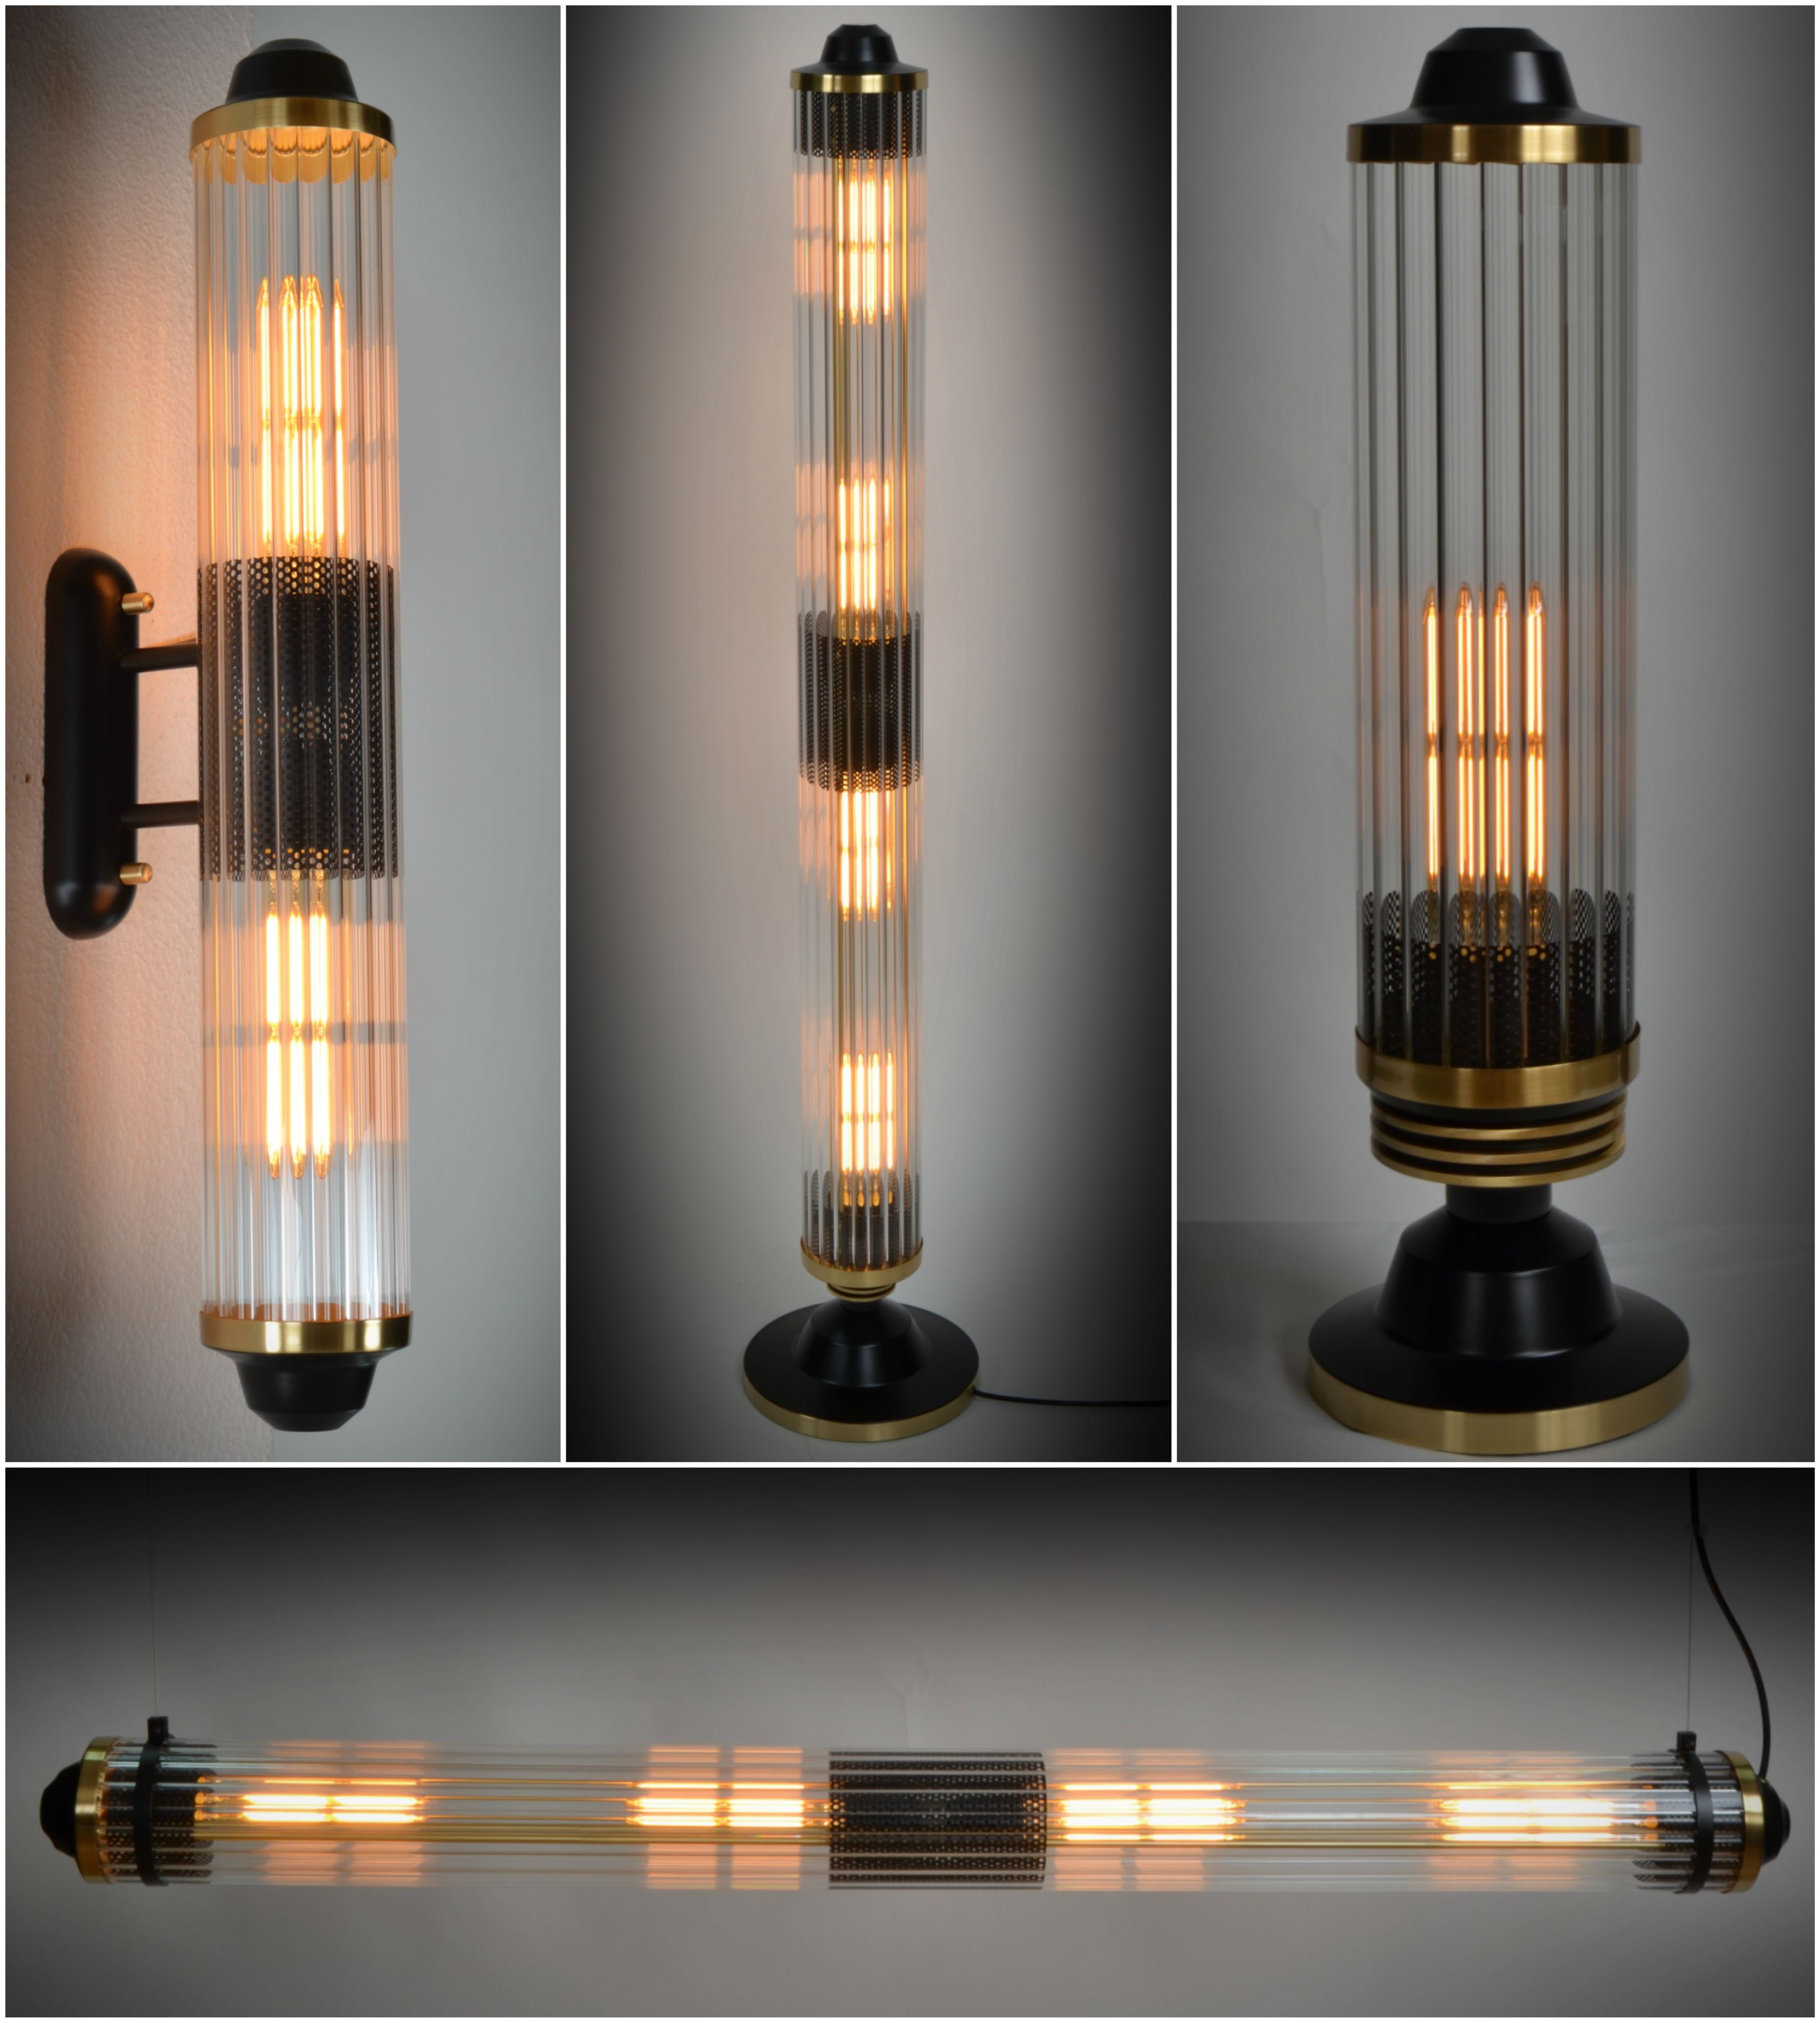 New Tubo Lighting Collection Floor Wall Table Or Ceiling